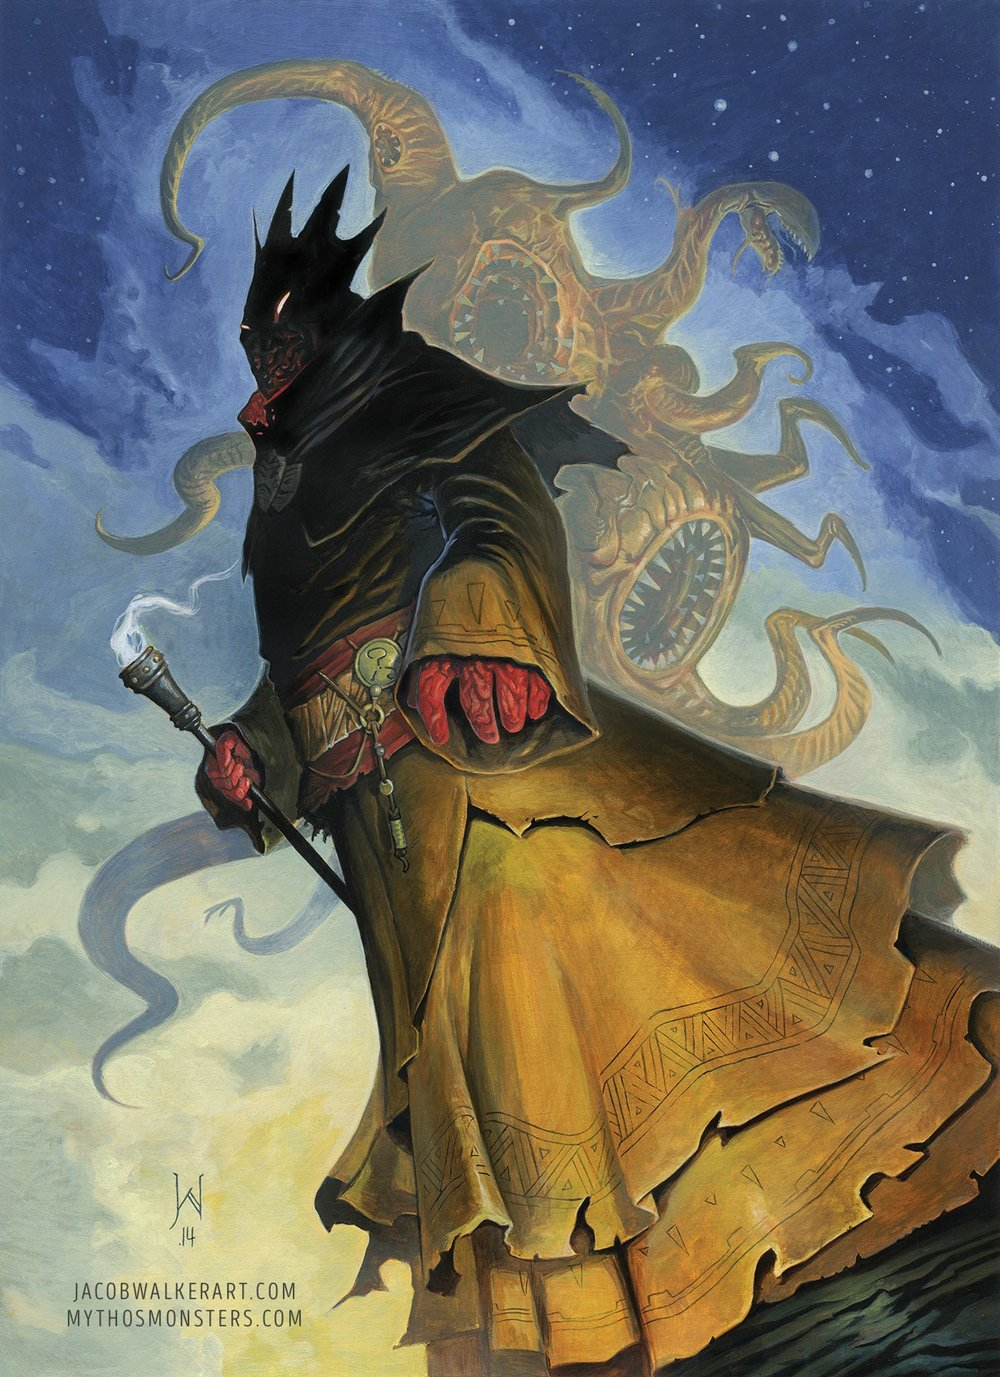 Hastur-KinginYellow-mythosmonstersdotcom